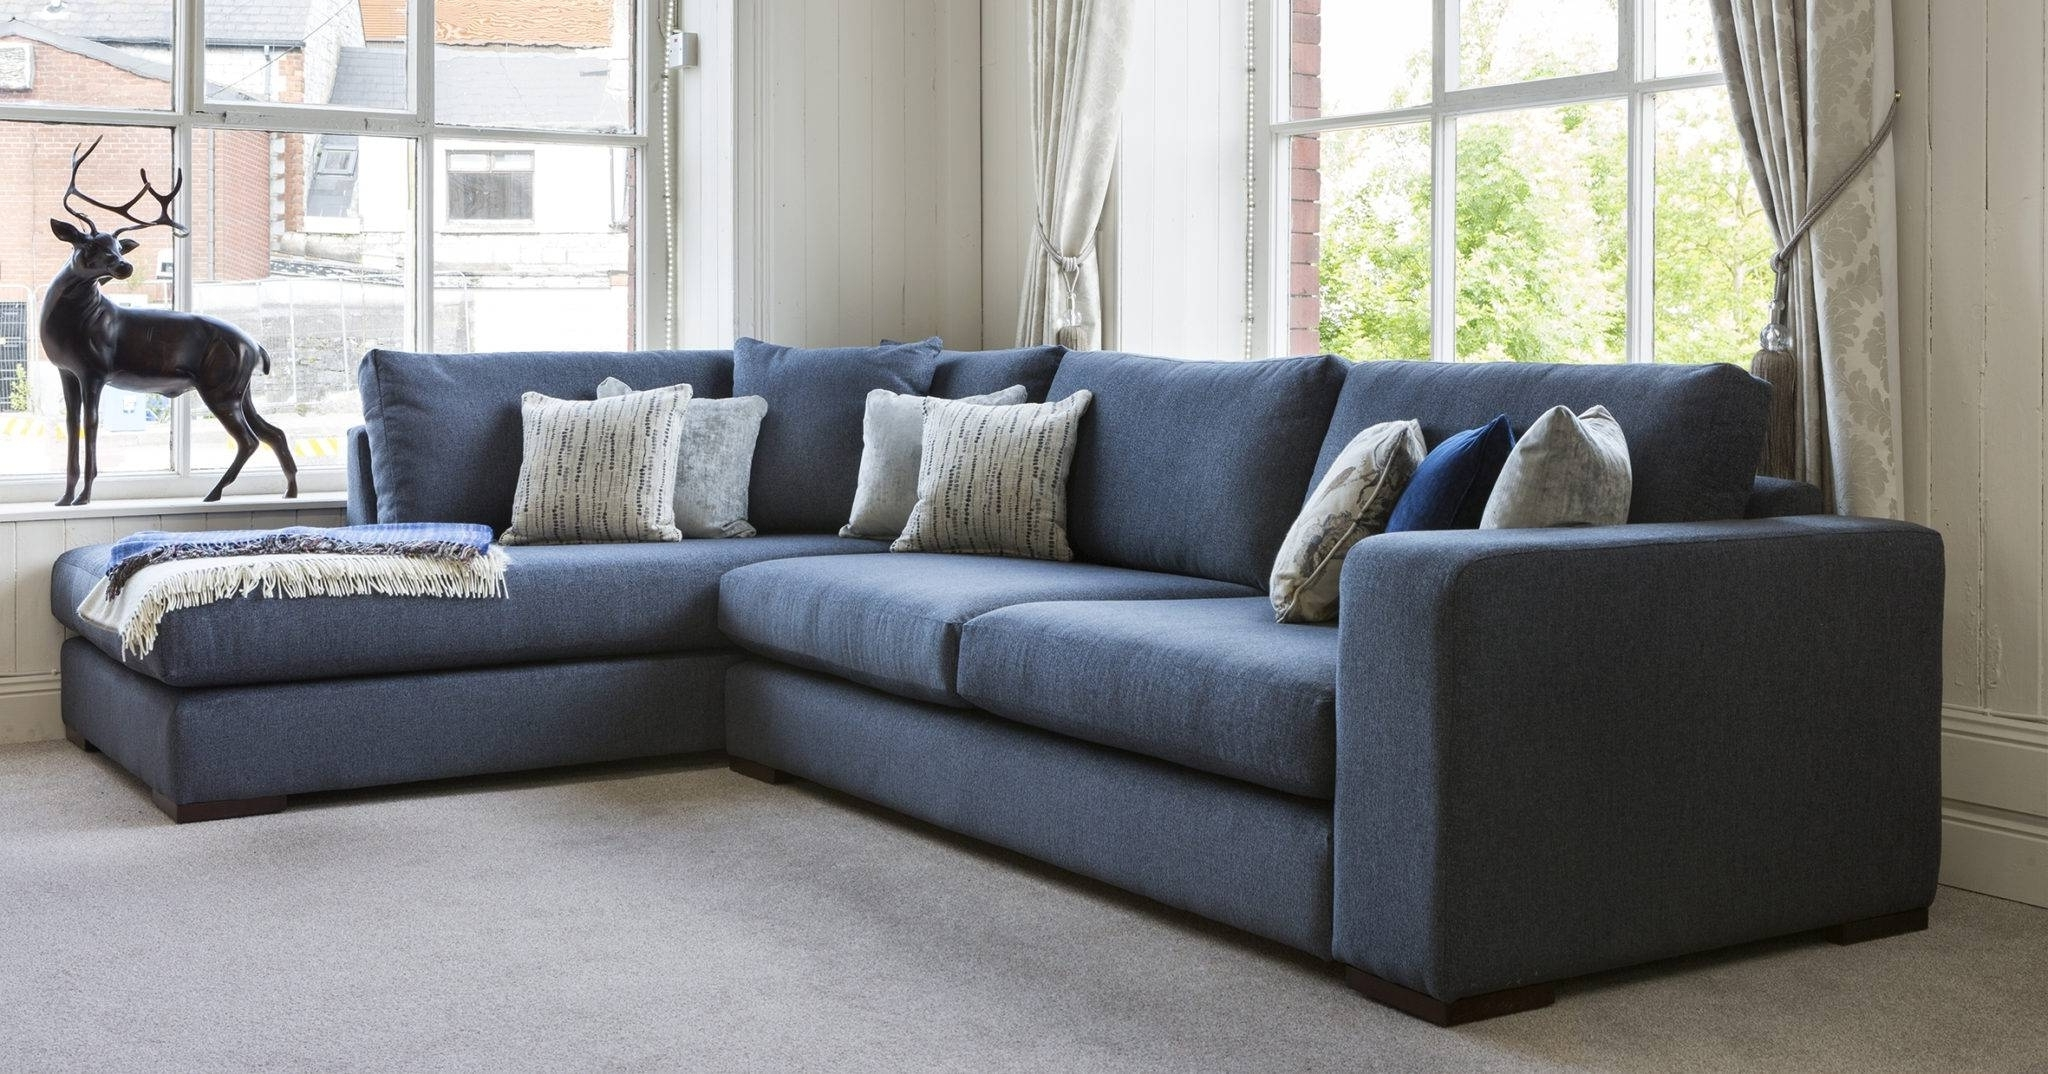 Fashionable Sofas And Chairs Regarding Sofas And Chairs (View 3 of 20)